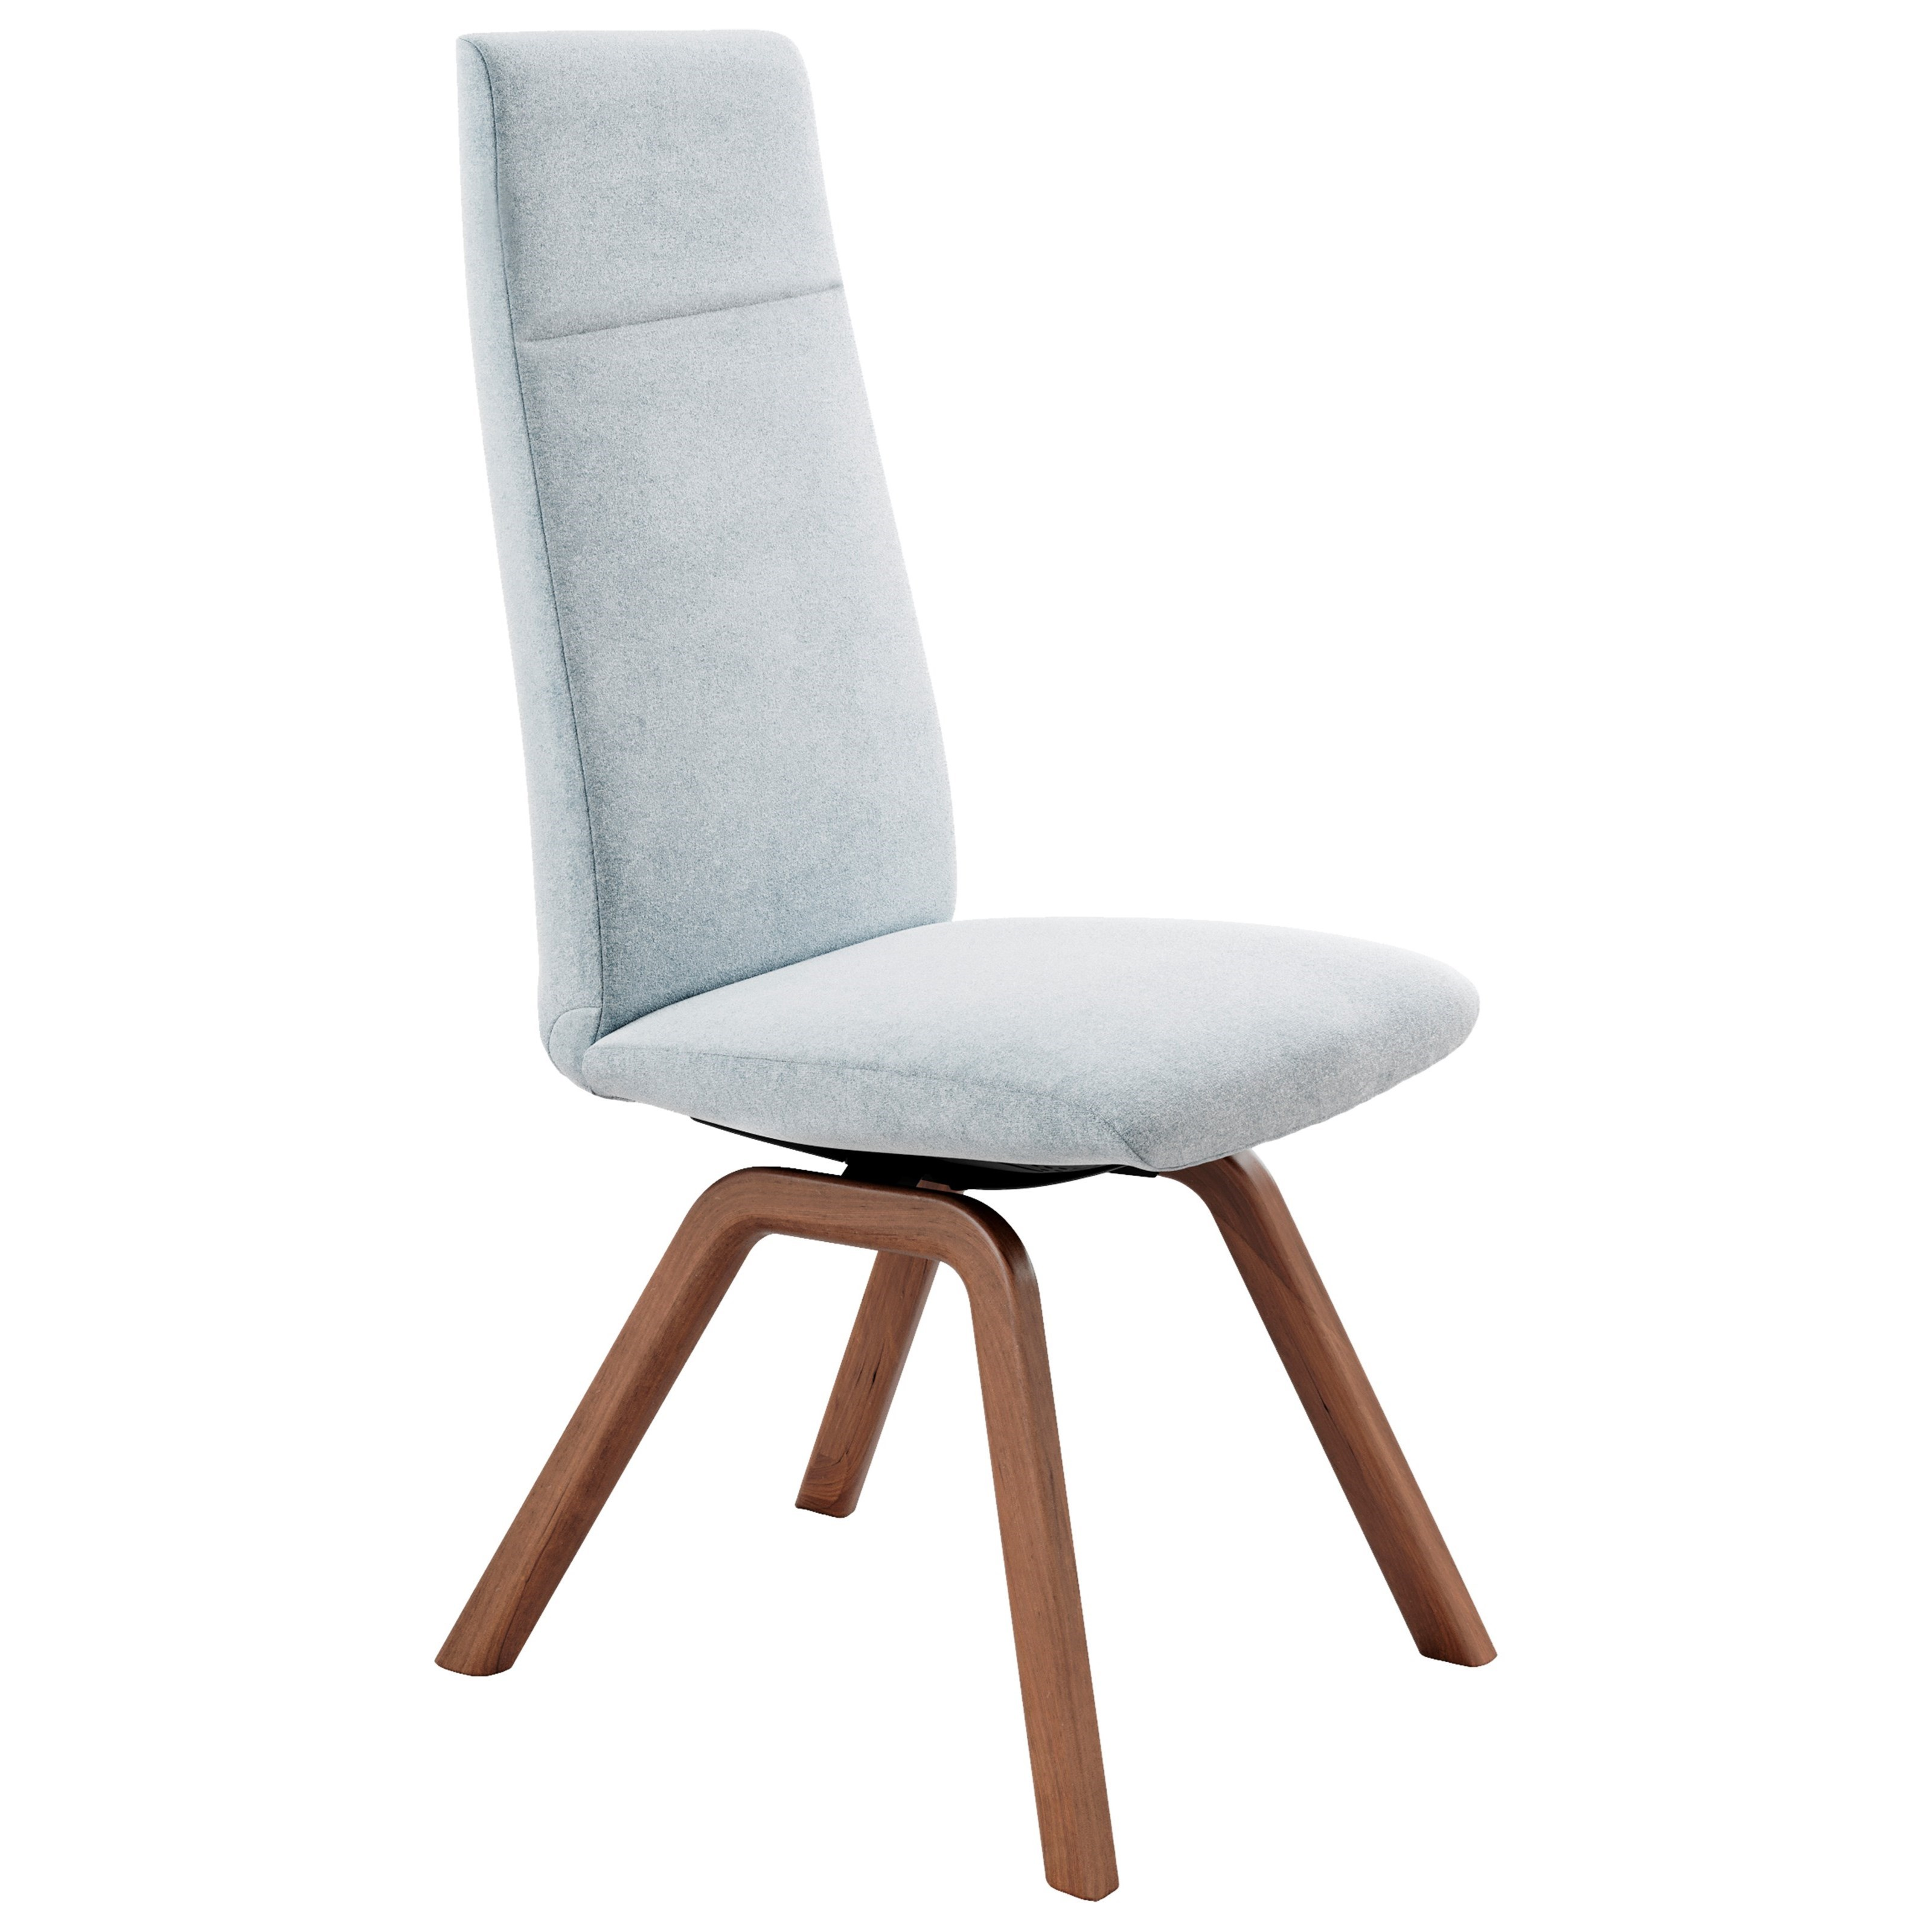 Reclining High-Back Dining Chair